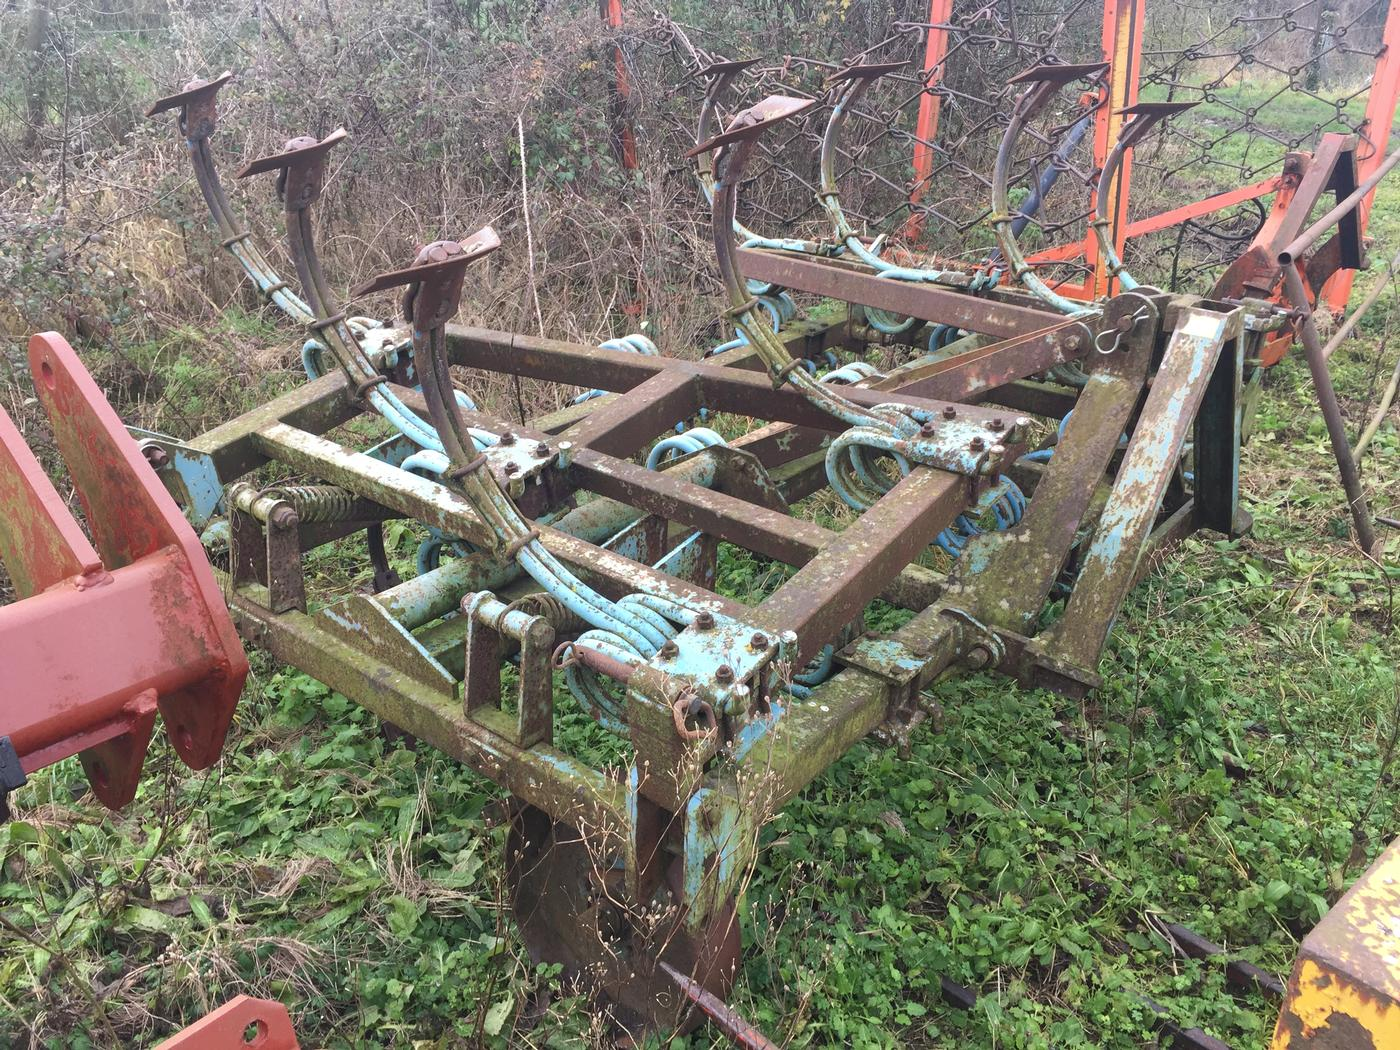 Parmiter 12ft Heavy spring tine cultivator- -twin round looped spring legs- with spring assisted fold up wings- Steel depth wheels A frame incorporated in the headstock